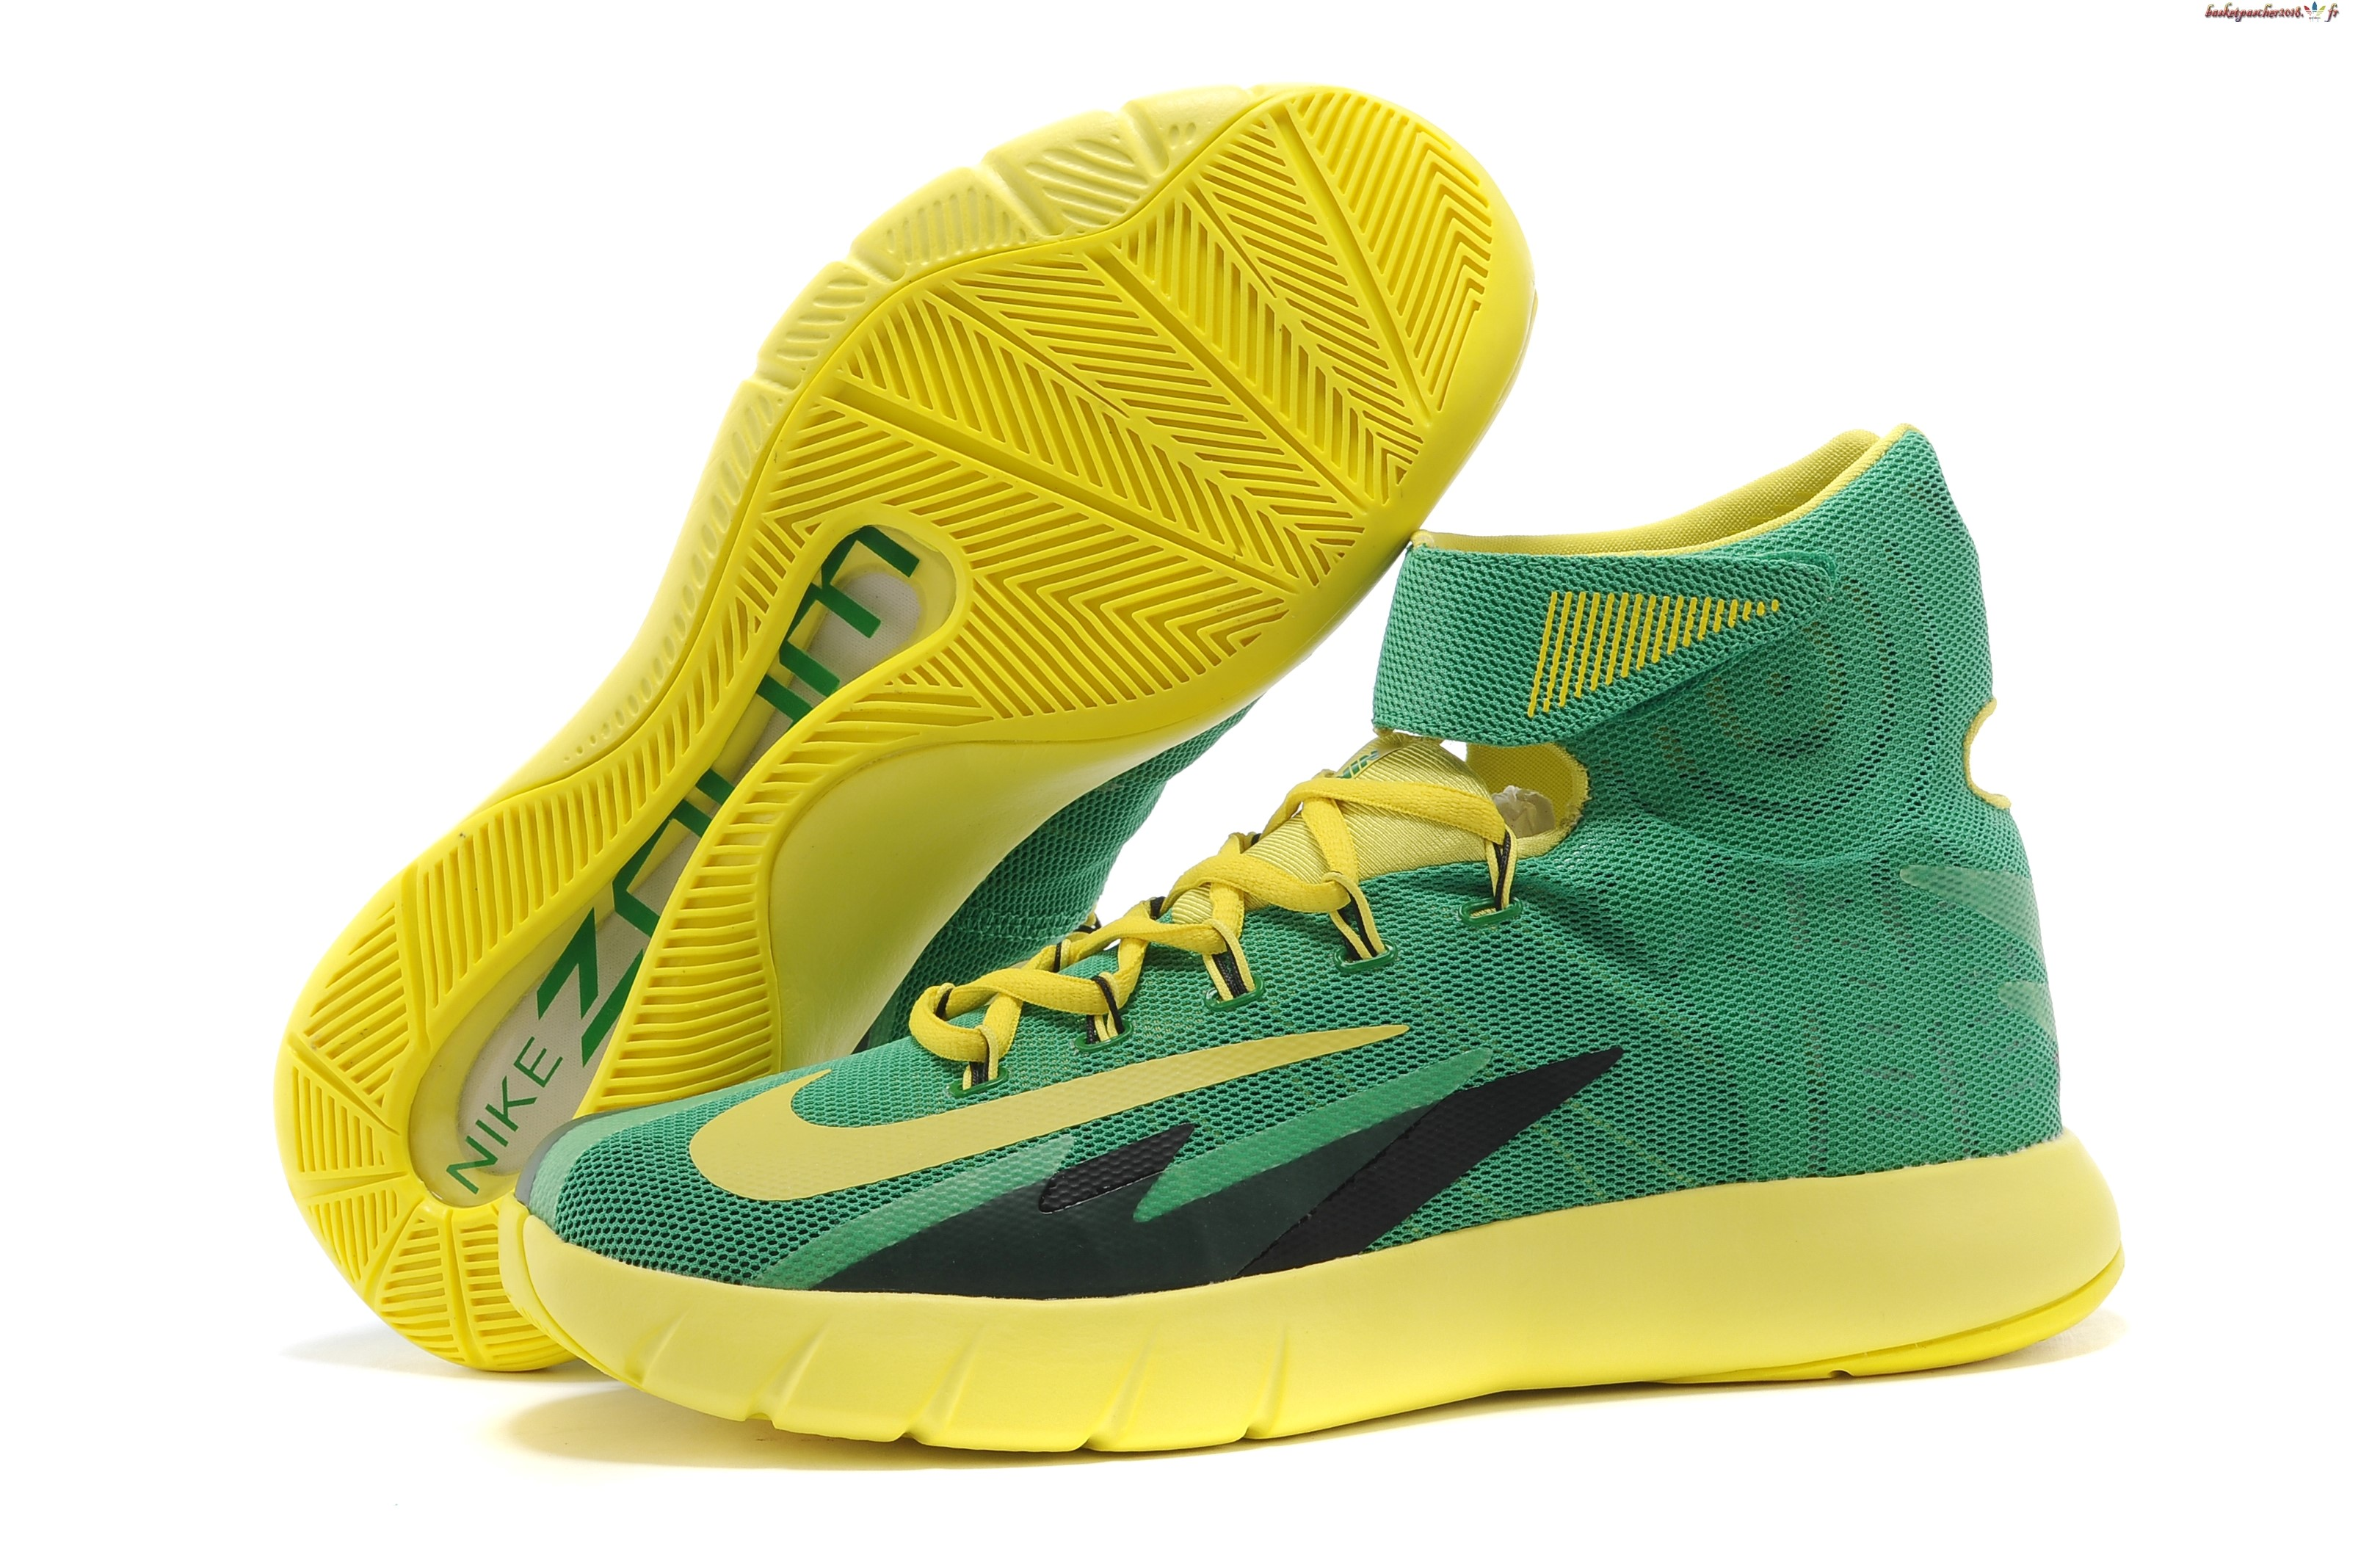 Vente Chaude Chaussures De Basketball Homme Nike Zoom Hyperrev Kyrie Irving Vert Jaune Pas Cher